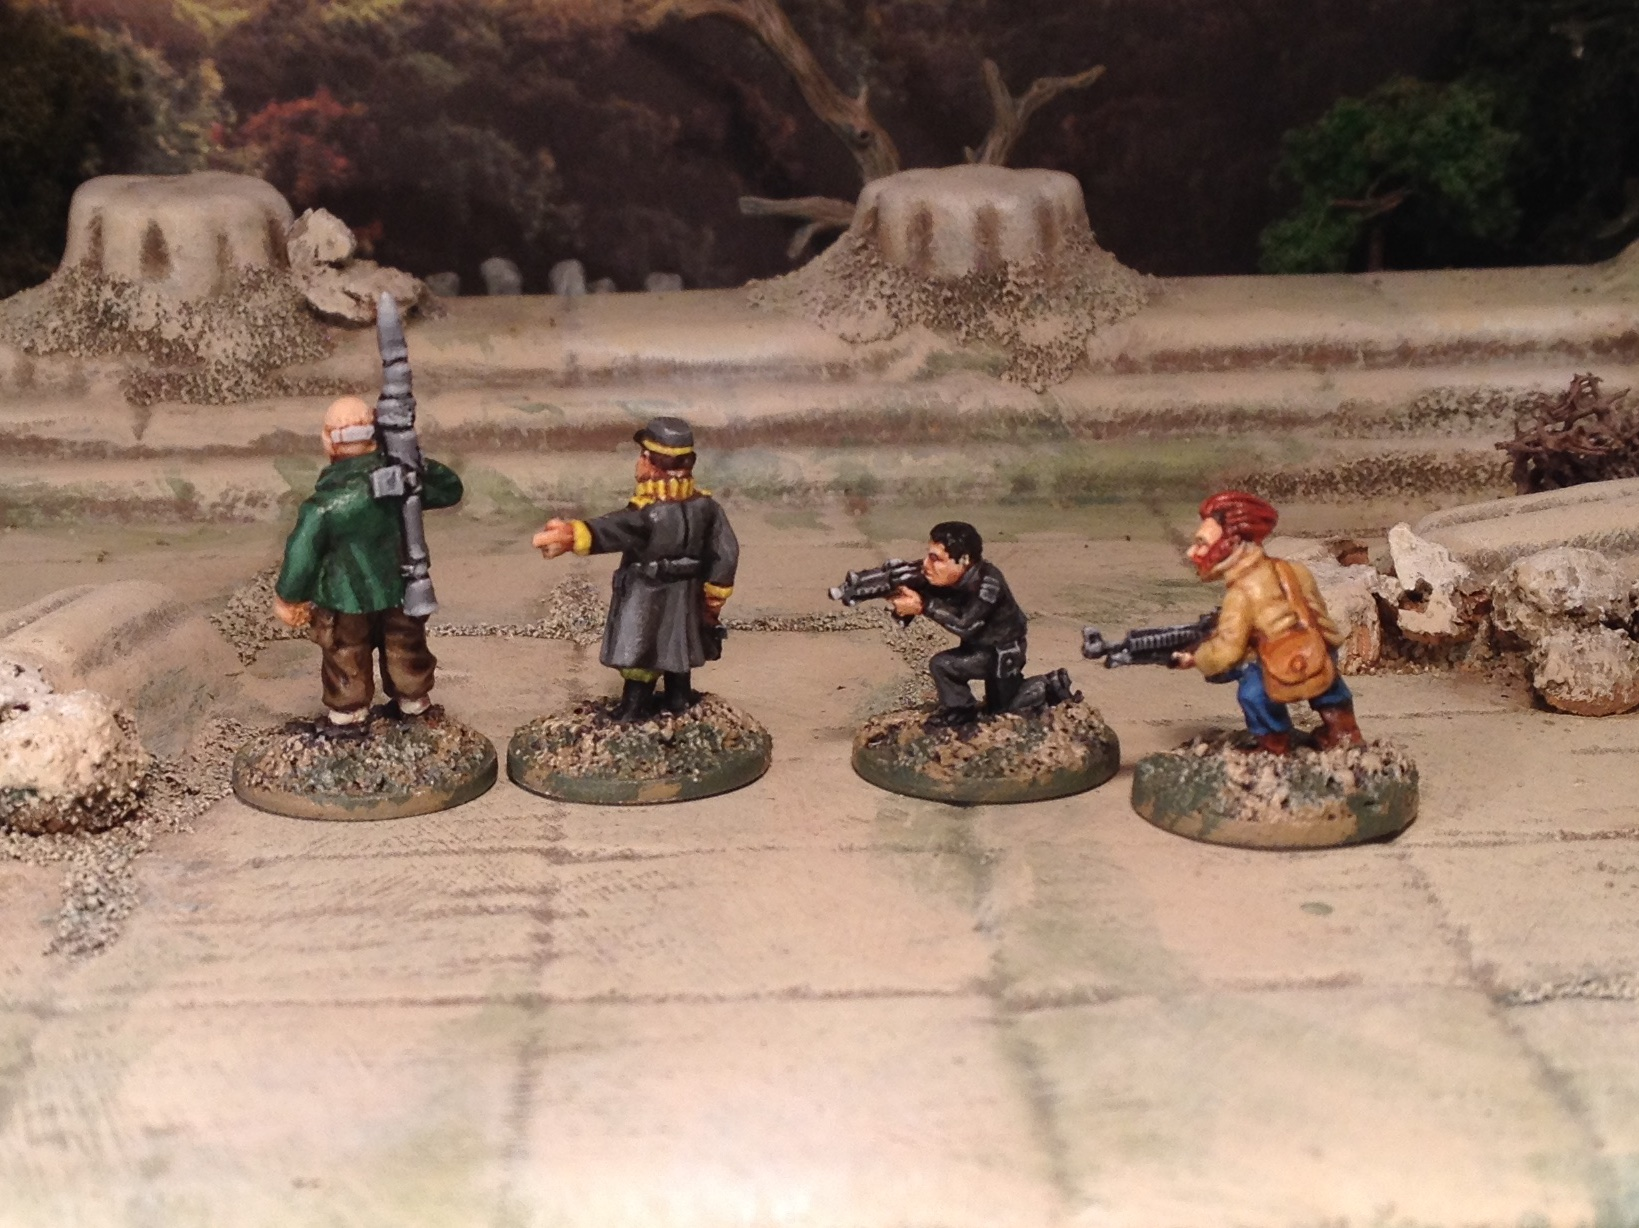 warchest_wargame_miniatures_IMG_1883